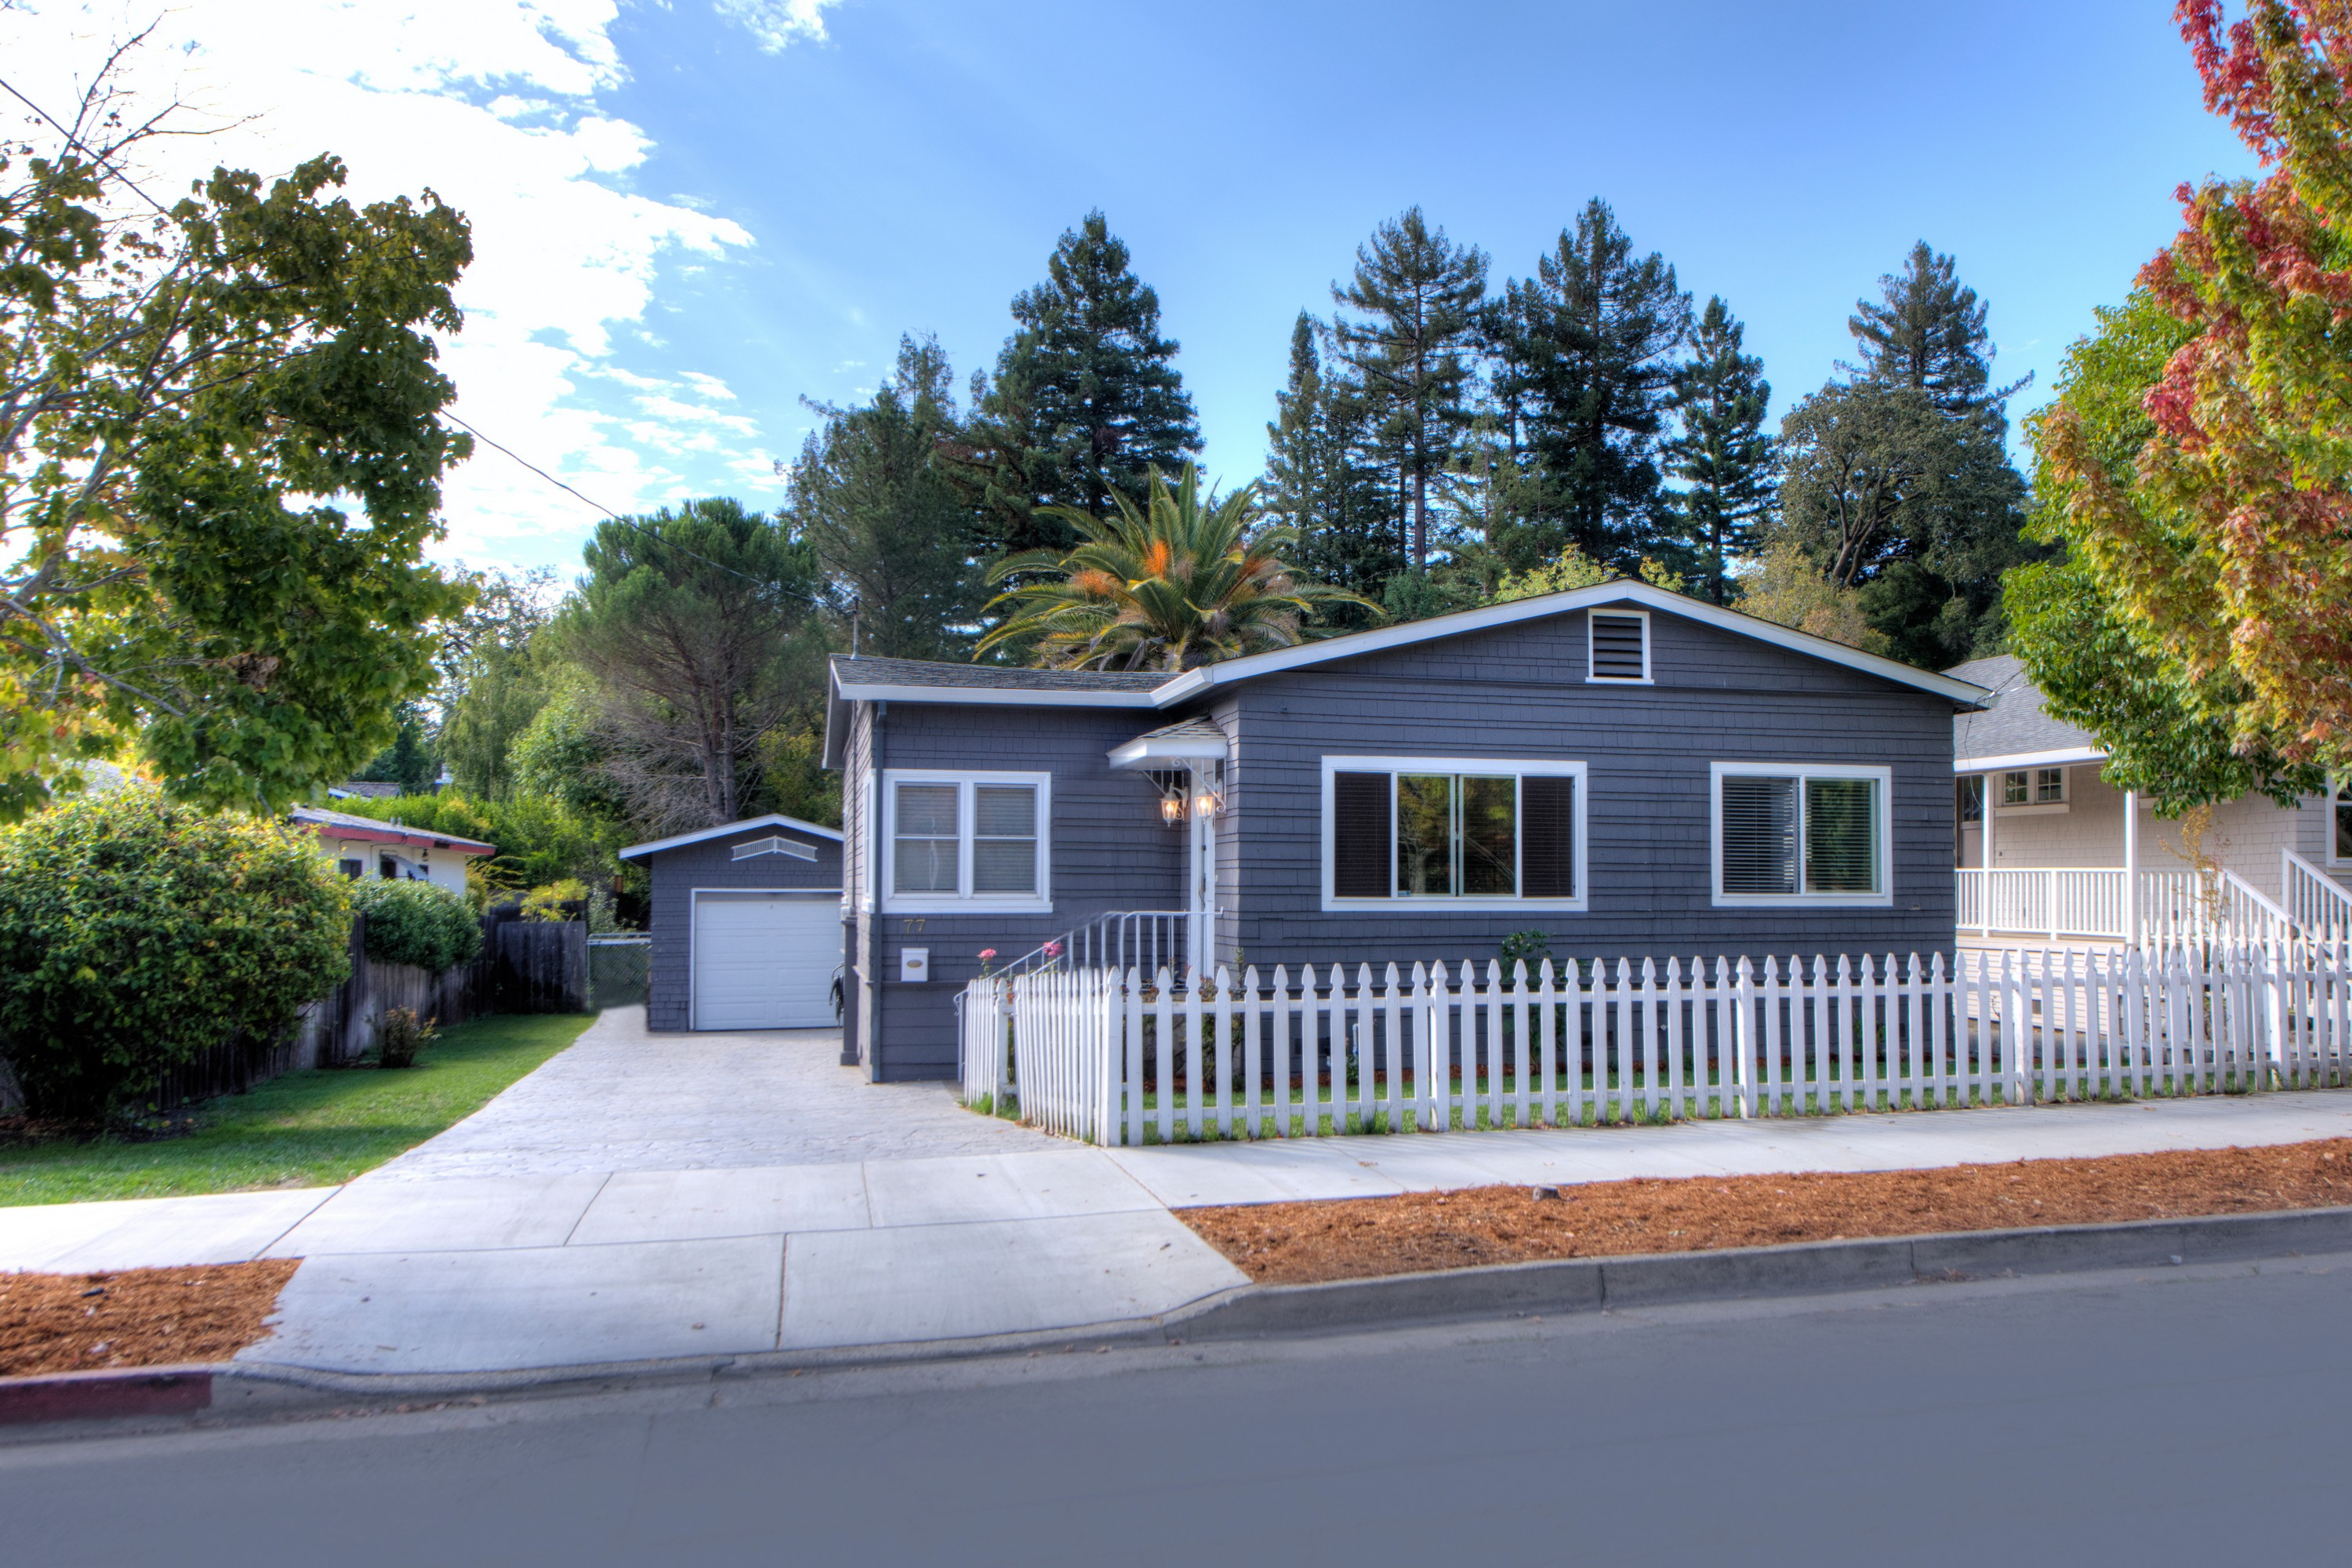 Single Family Home for Sale at Contemporary Cottage on Large Lot 77 Bolinas Avenue Ross, California 94957 United States